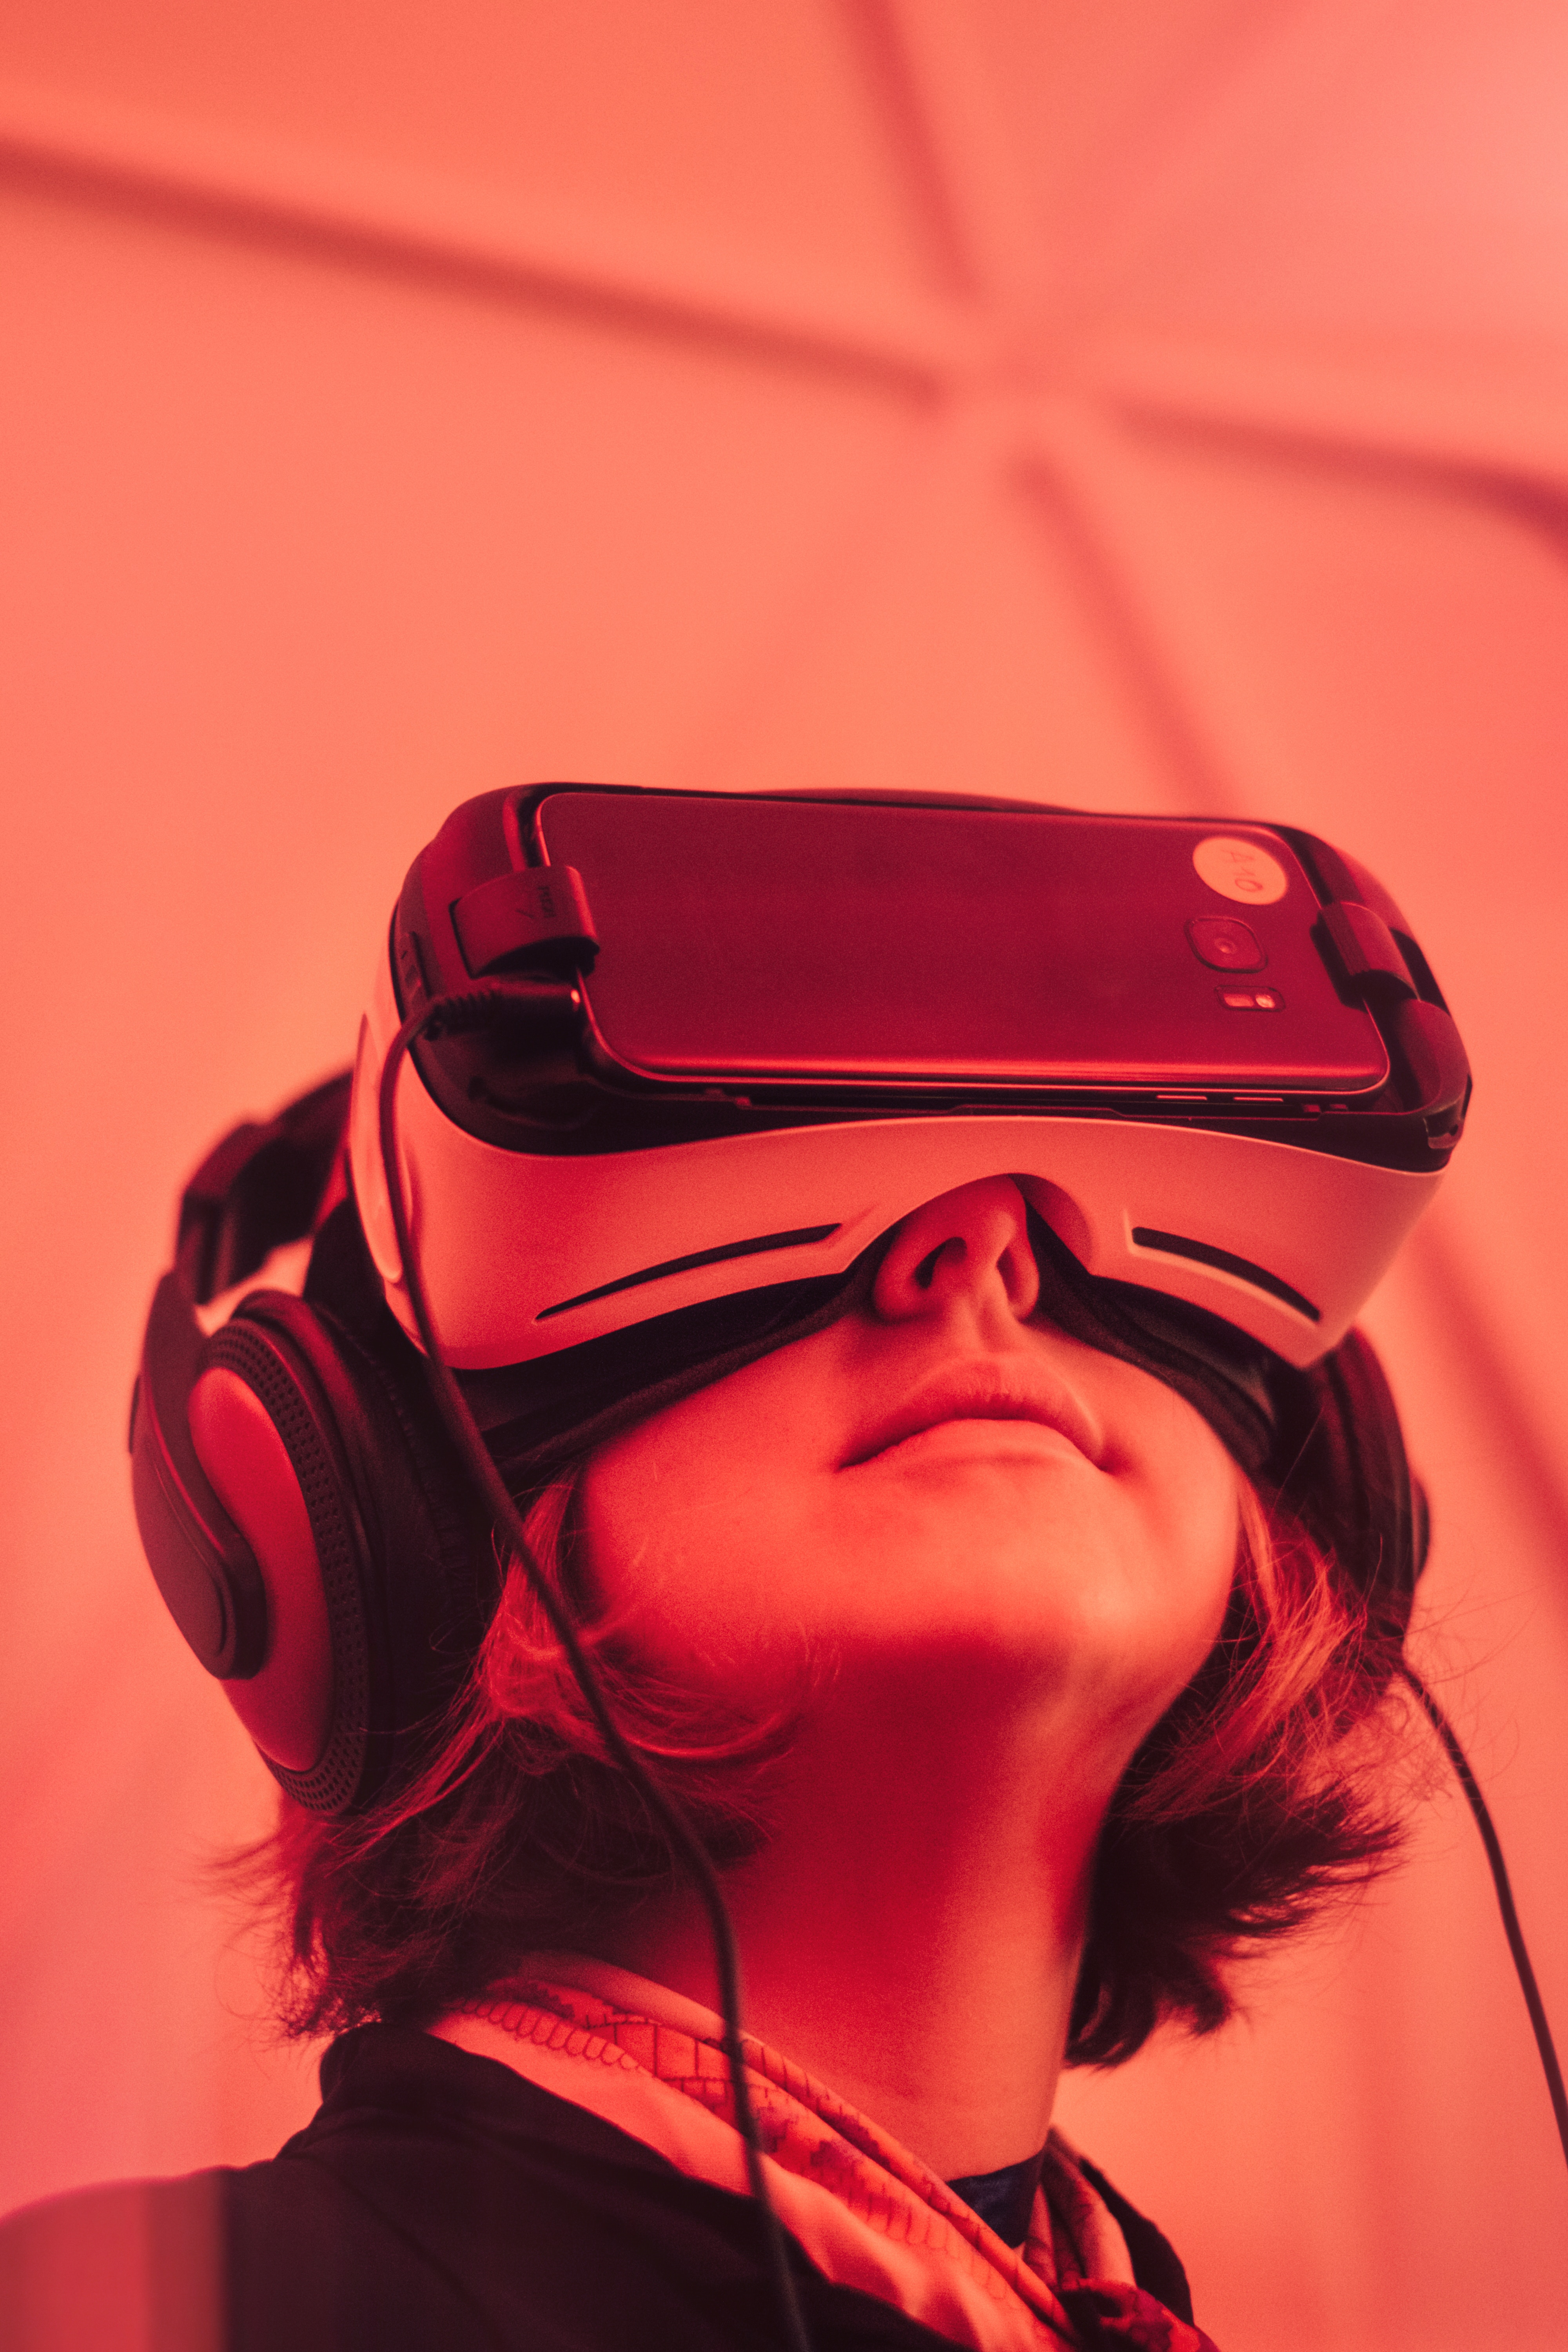 Future Of Technology - How It's Shaping Our Next Generation